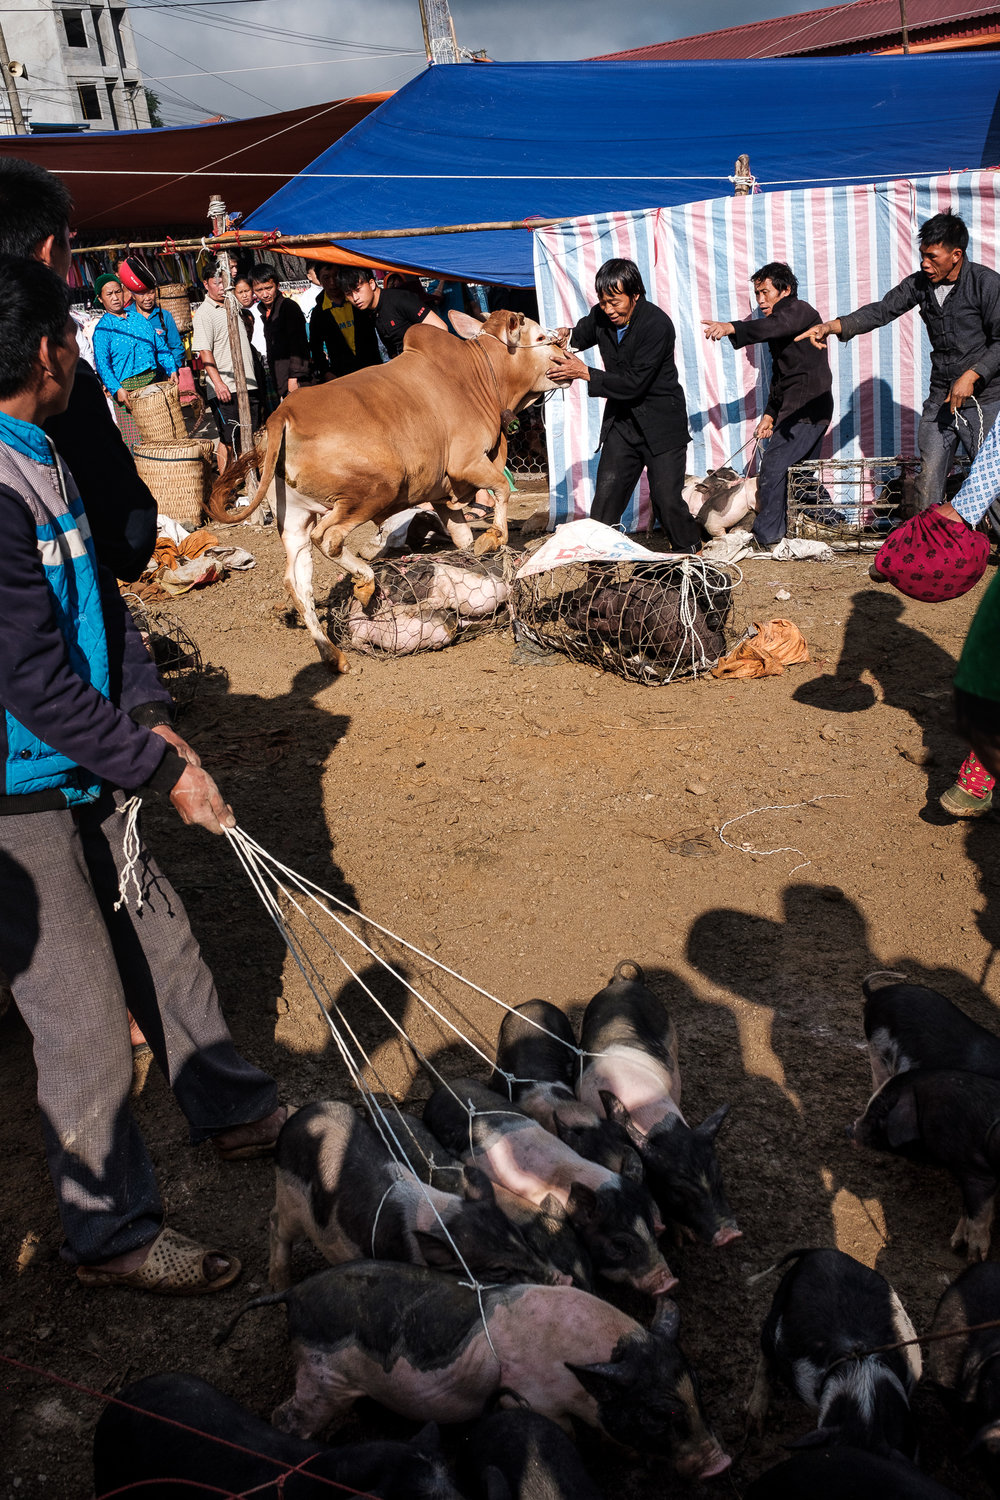 The crowd trying to control a raging cow in Dong van market.